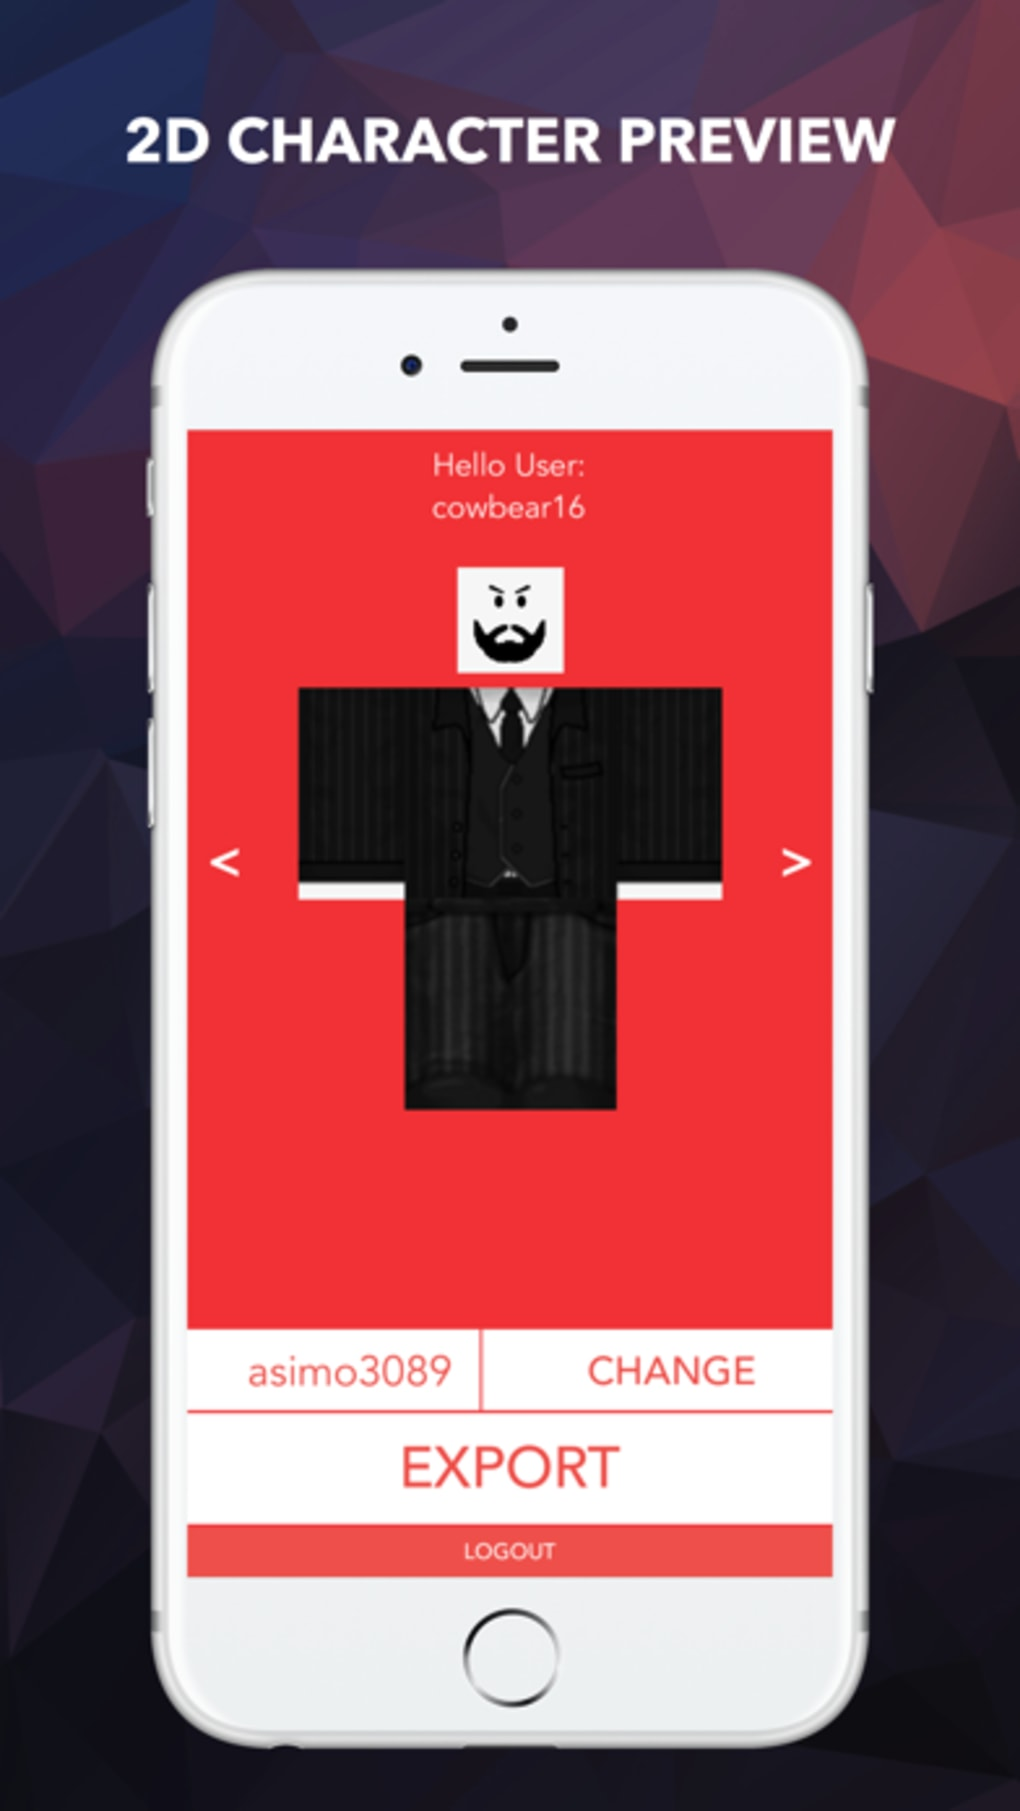 Roblox Packages Download - Paperblox For Roblox For Iphone Download